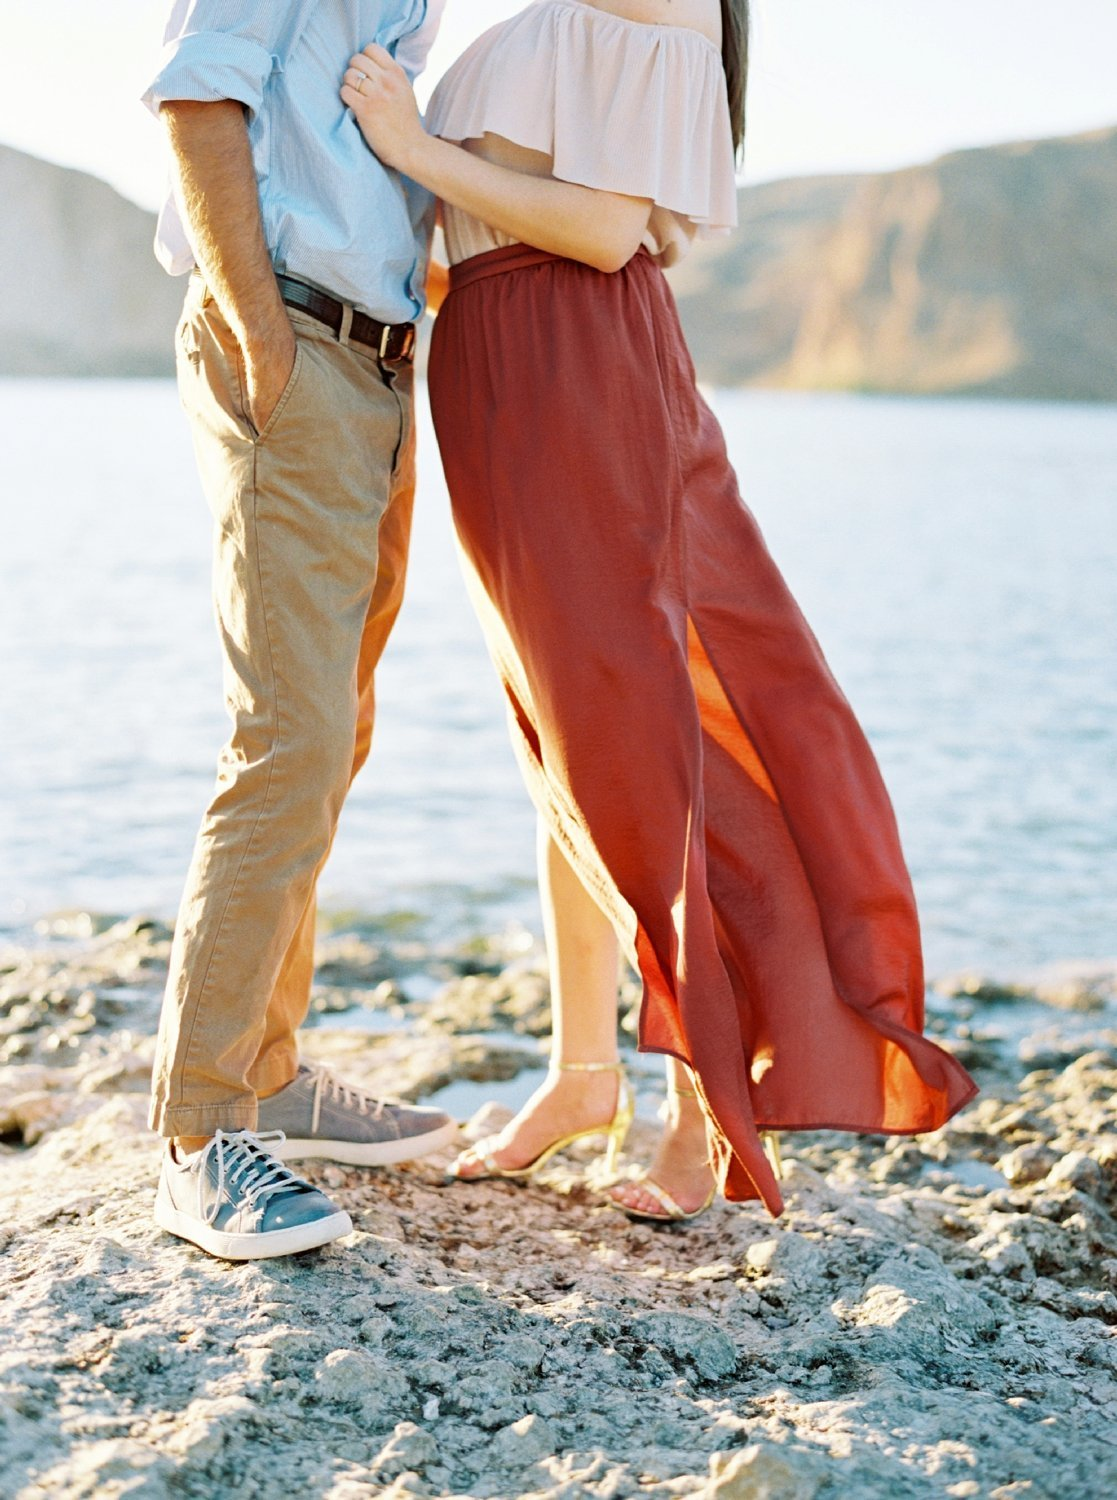 lake-arizona-engagement-session-wedding-photographer-Rachael-Koscica_0552